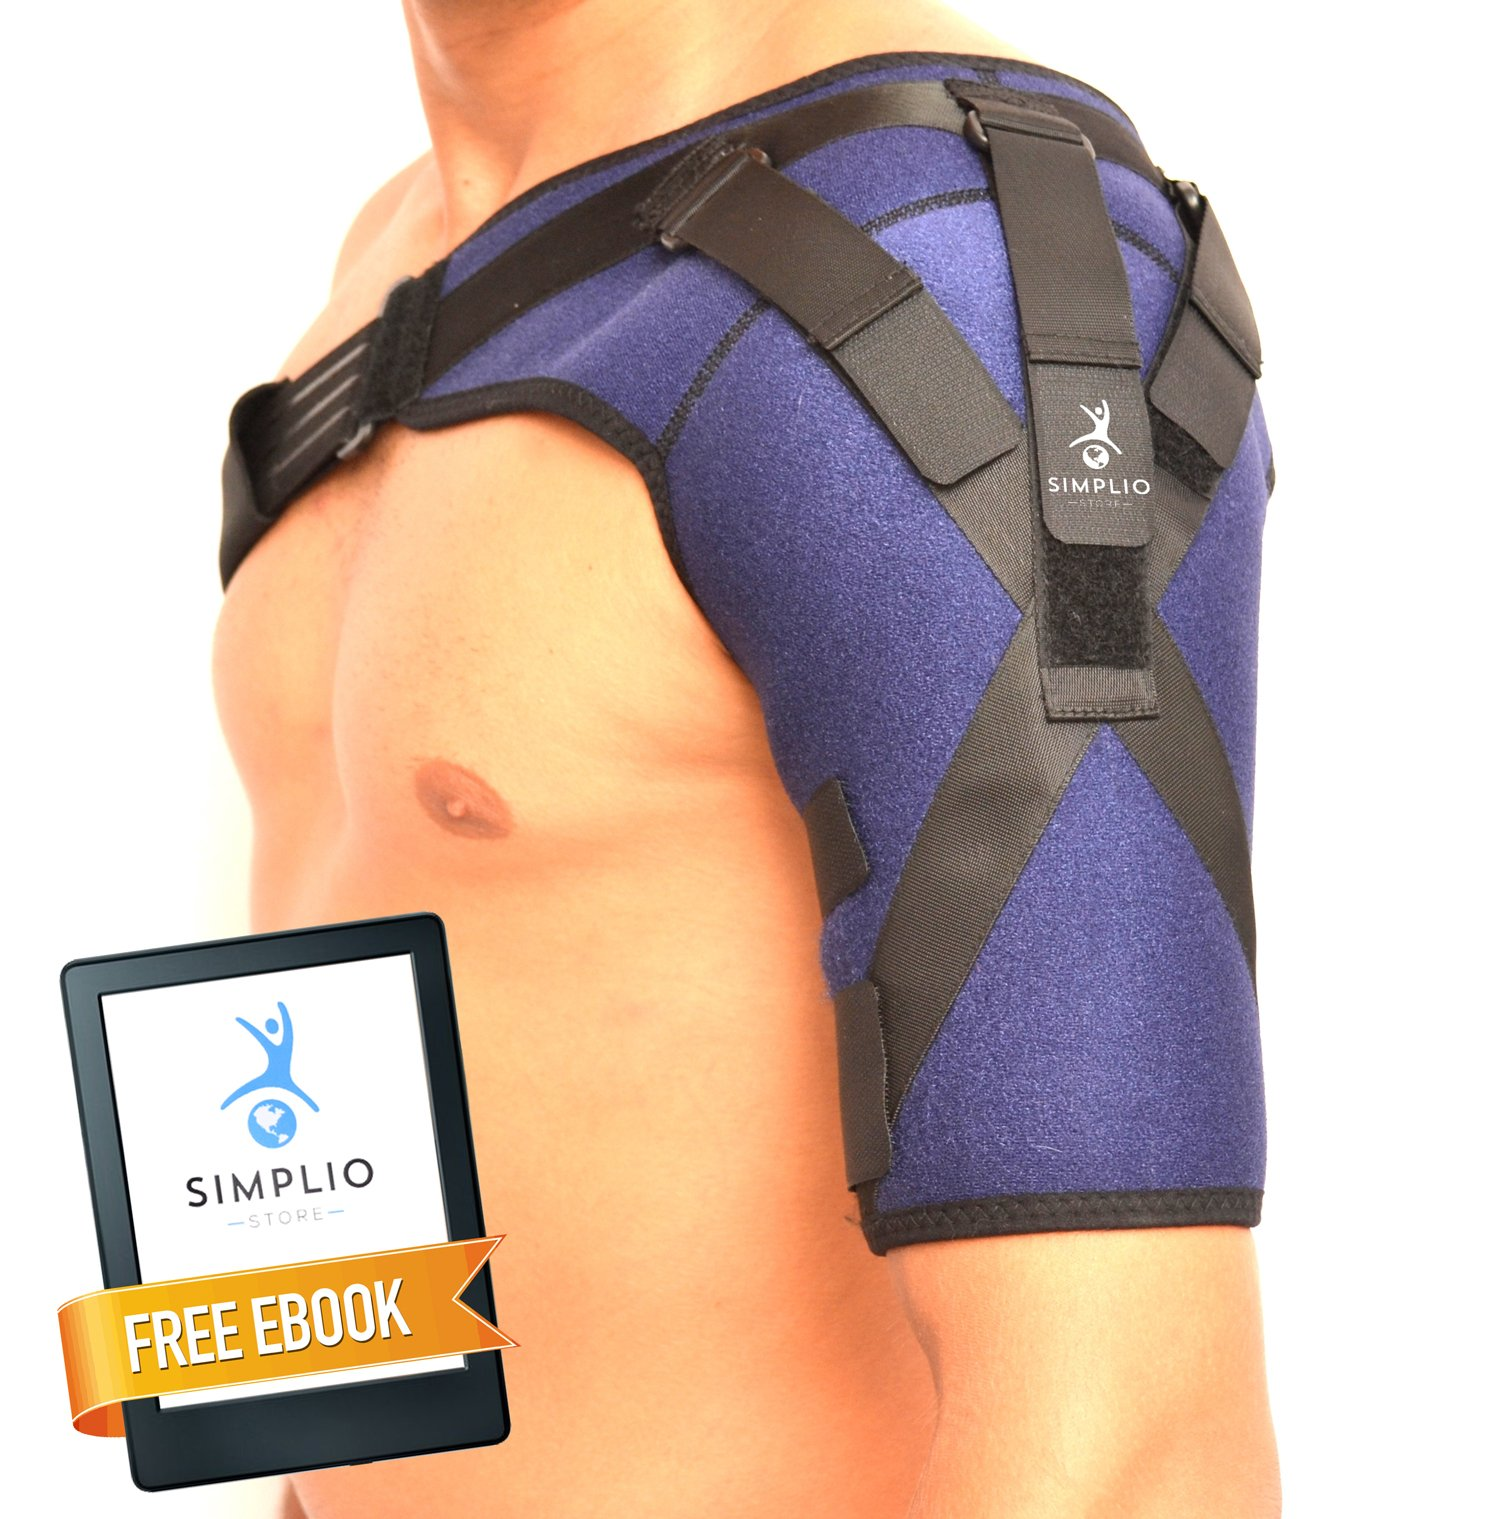 Shoulder Brace With Pressure Straps - Breathable Neoprene, Adjustable Support Sleeve, Compression Bands For Rotator Cuff, Frozen Shoulder Pain, Dislocated AC Joint, Labrum Tear by SimplioStore + eBook